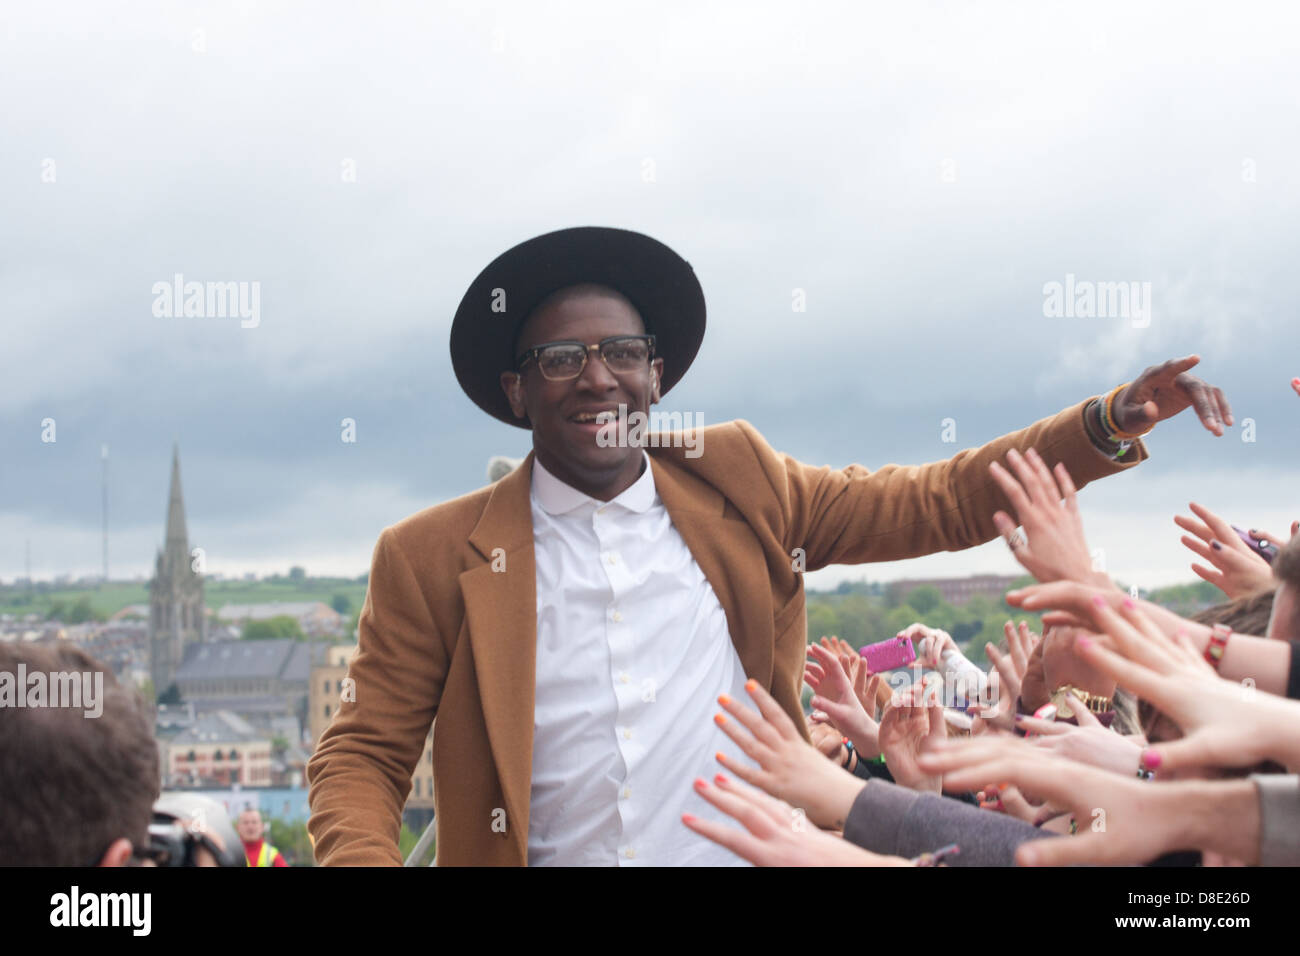 Labrinth joined Danny O'Donoghue from The Script as a special guest, meeting the crowds that braved the heavy - Stock Image